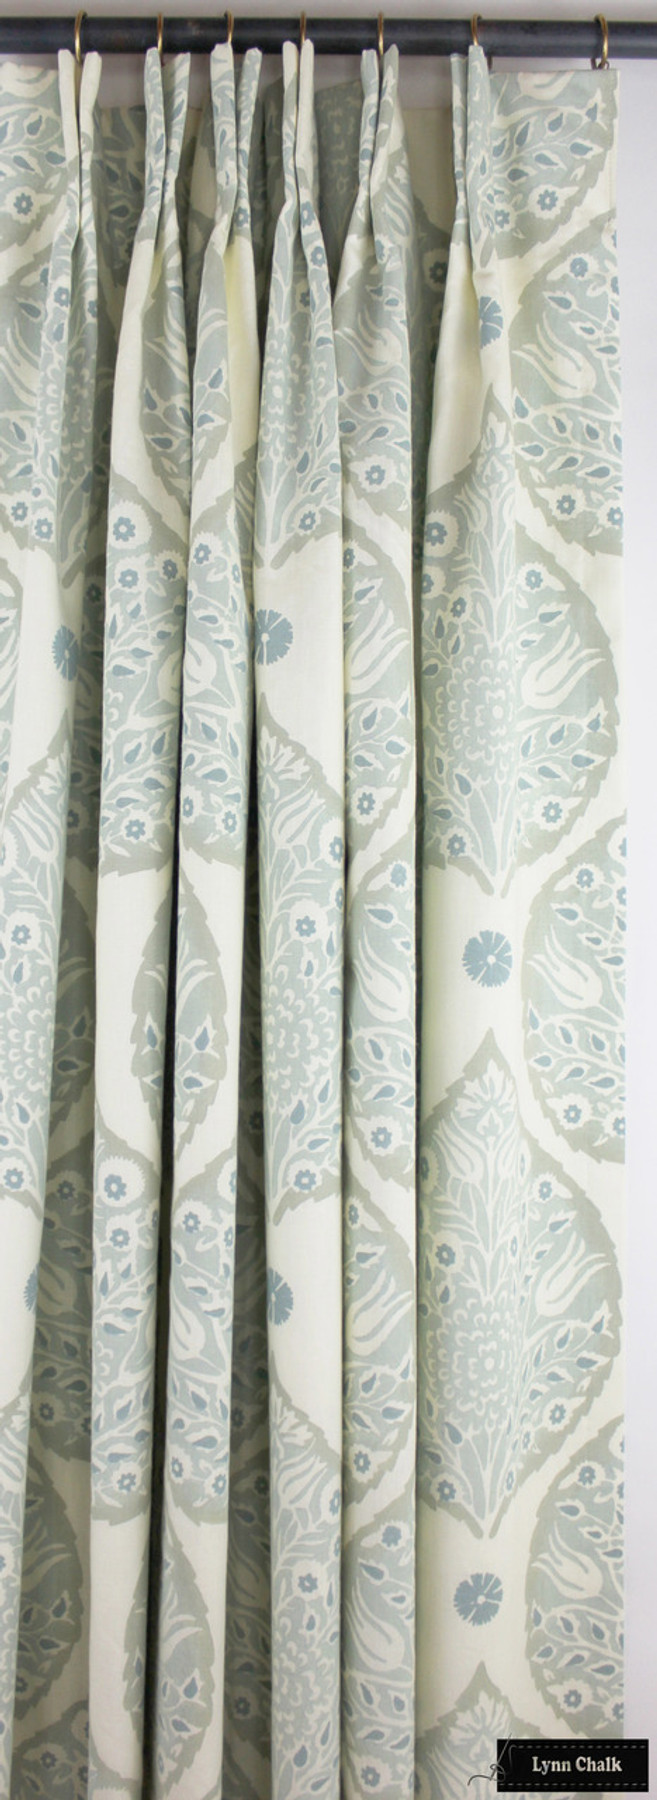 Galbraith & Paul Lotus Wallpaper in Dining Room with Ivory Linen Drapes (Elle Decor) Wallpaper Sold By The Yard - 5 Yard Minimum Order